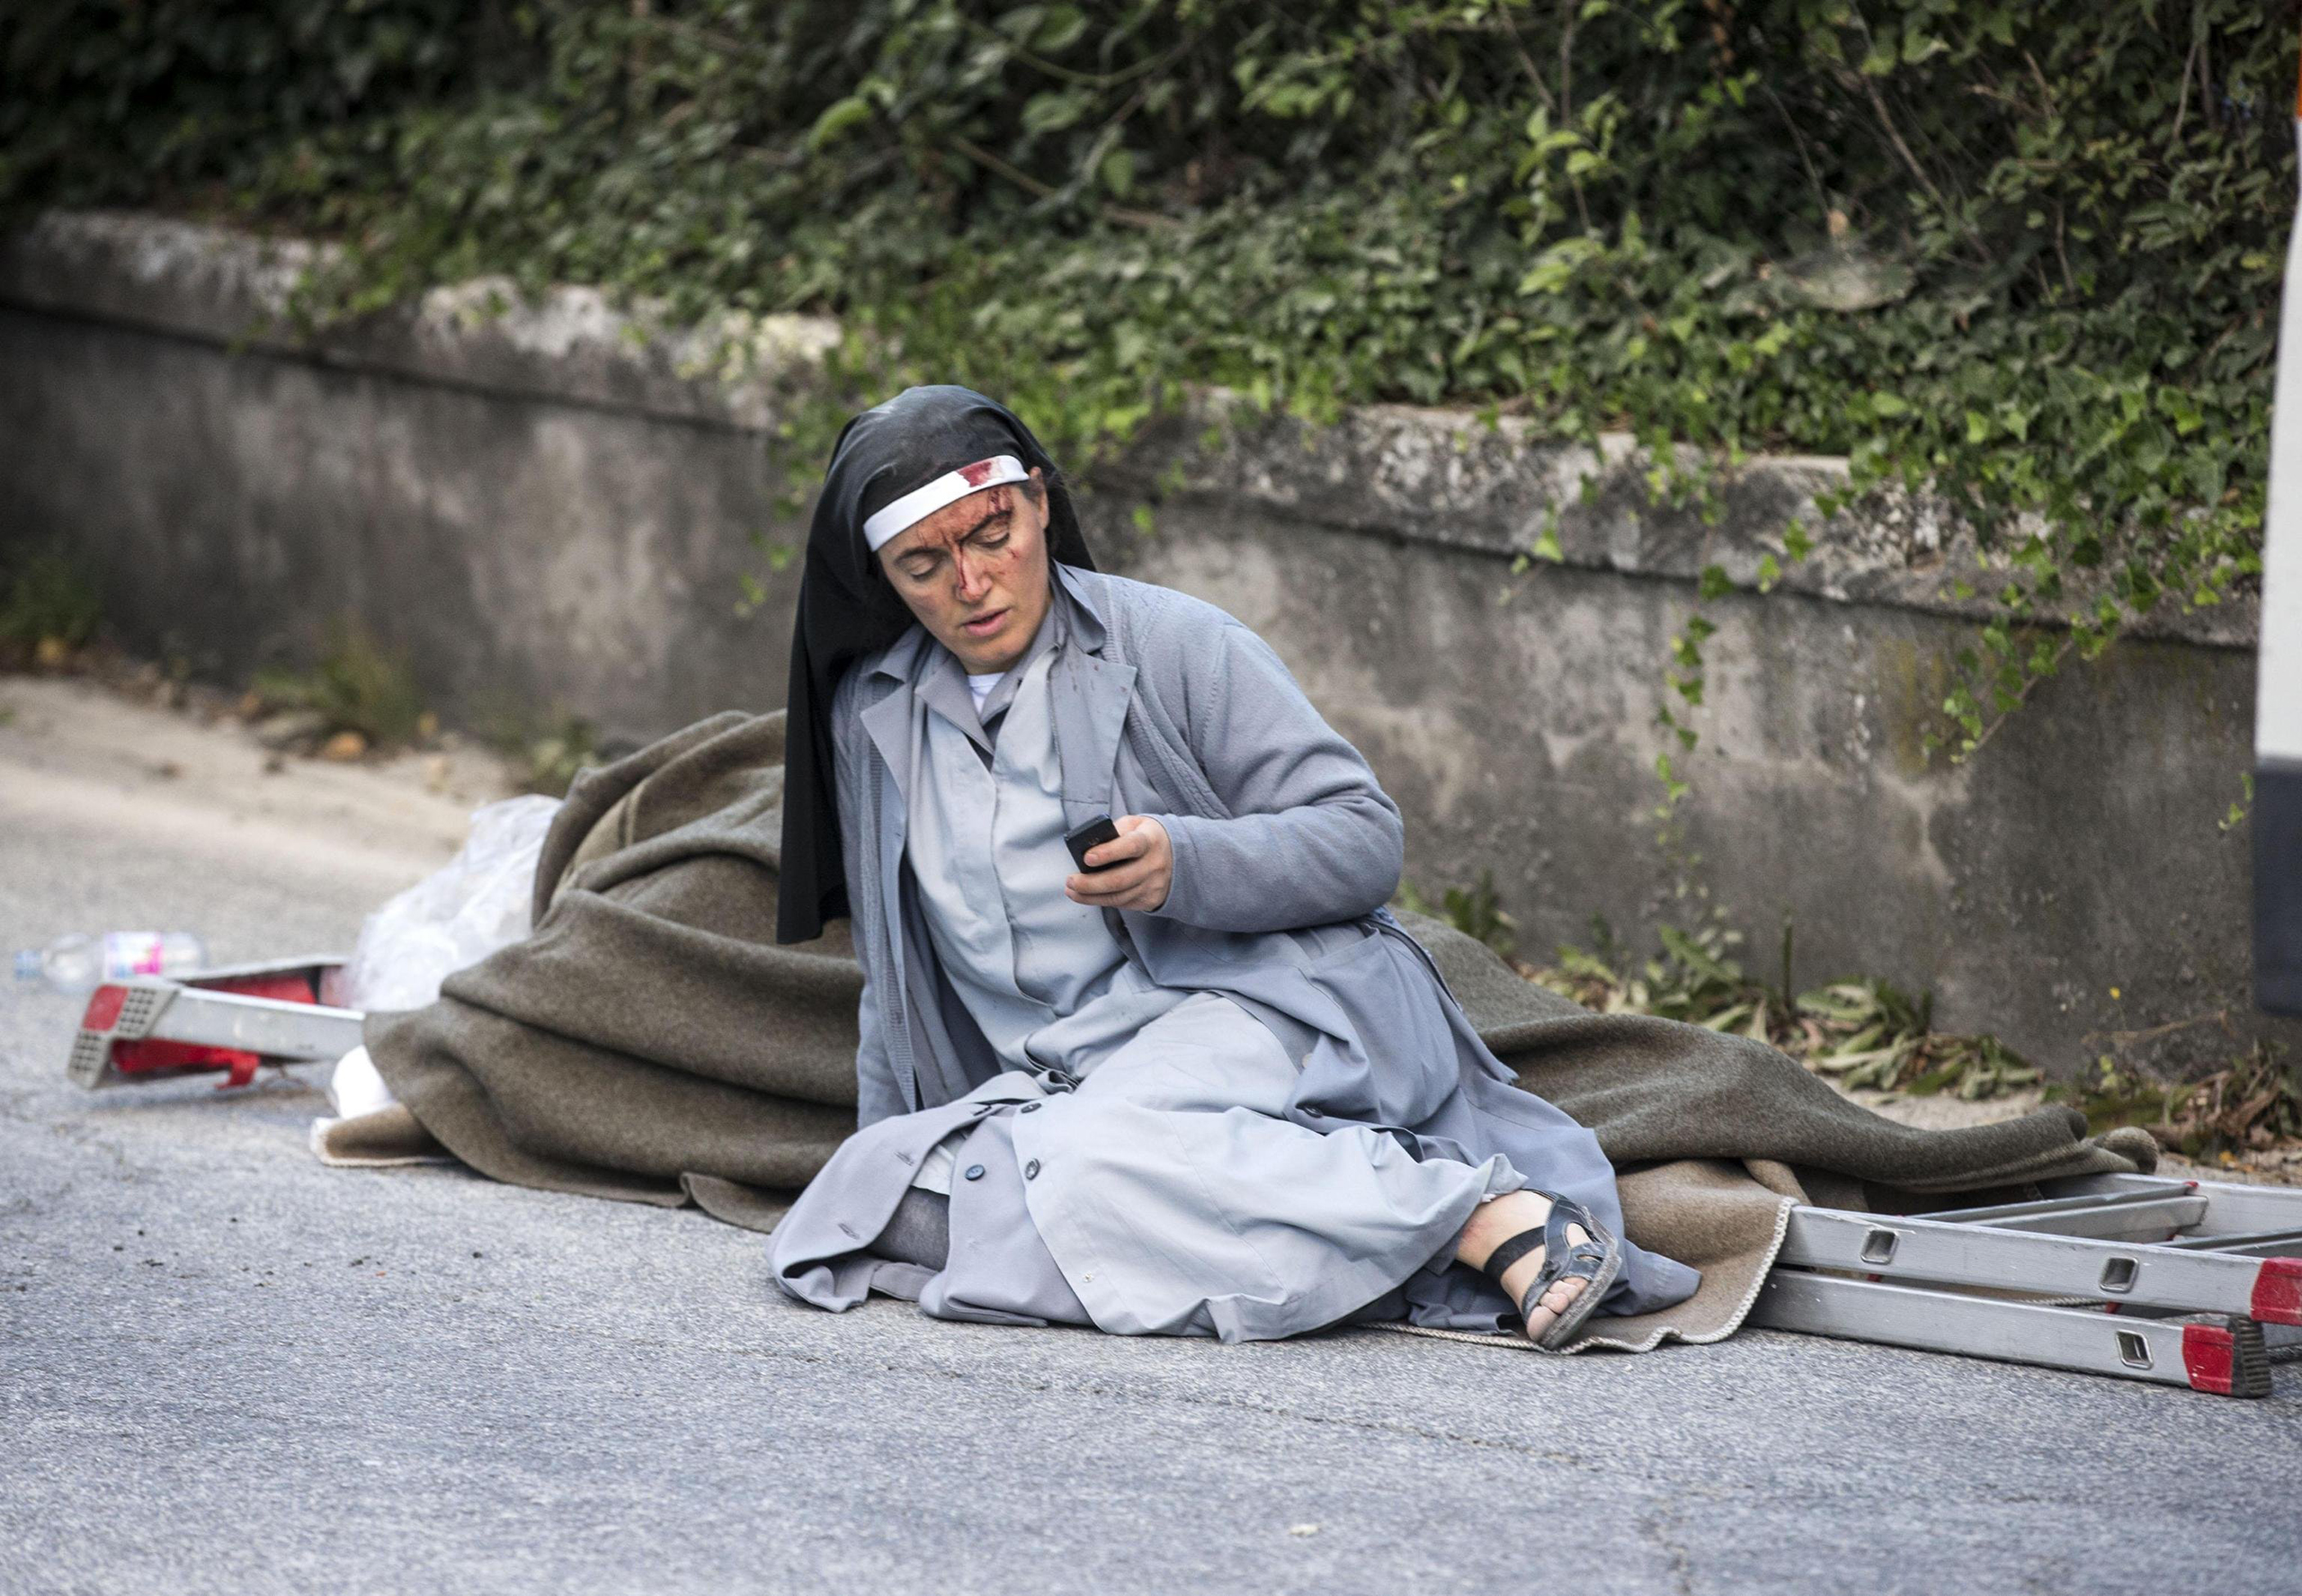 A nun checks her mobile phone as she lies near a victim laid on a ladder following an earthquake in Amatrice Italy, Aug. 24, 2016.